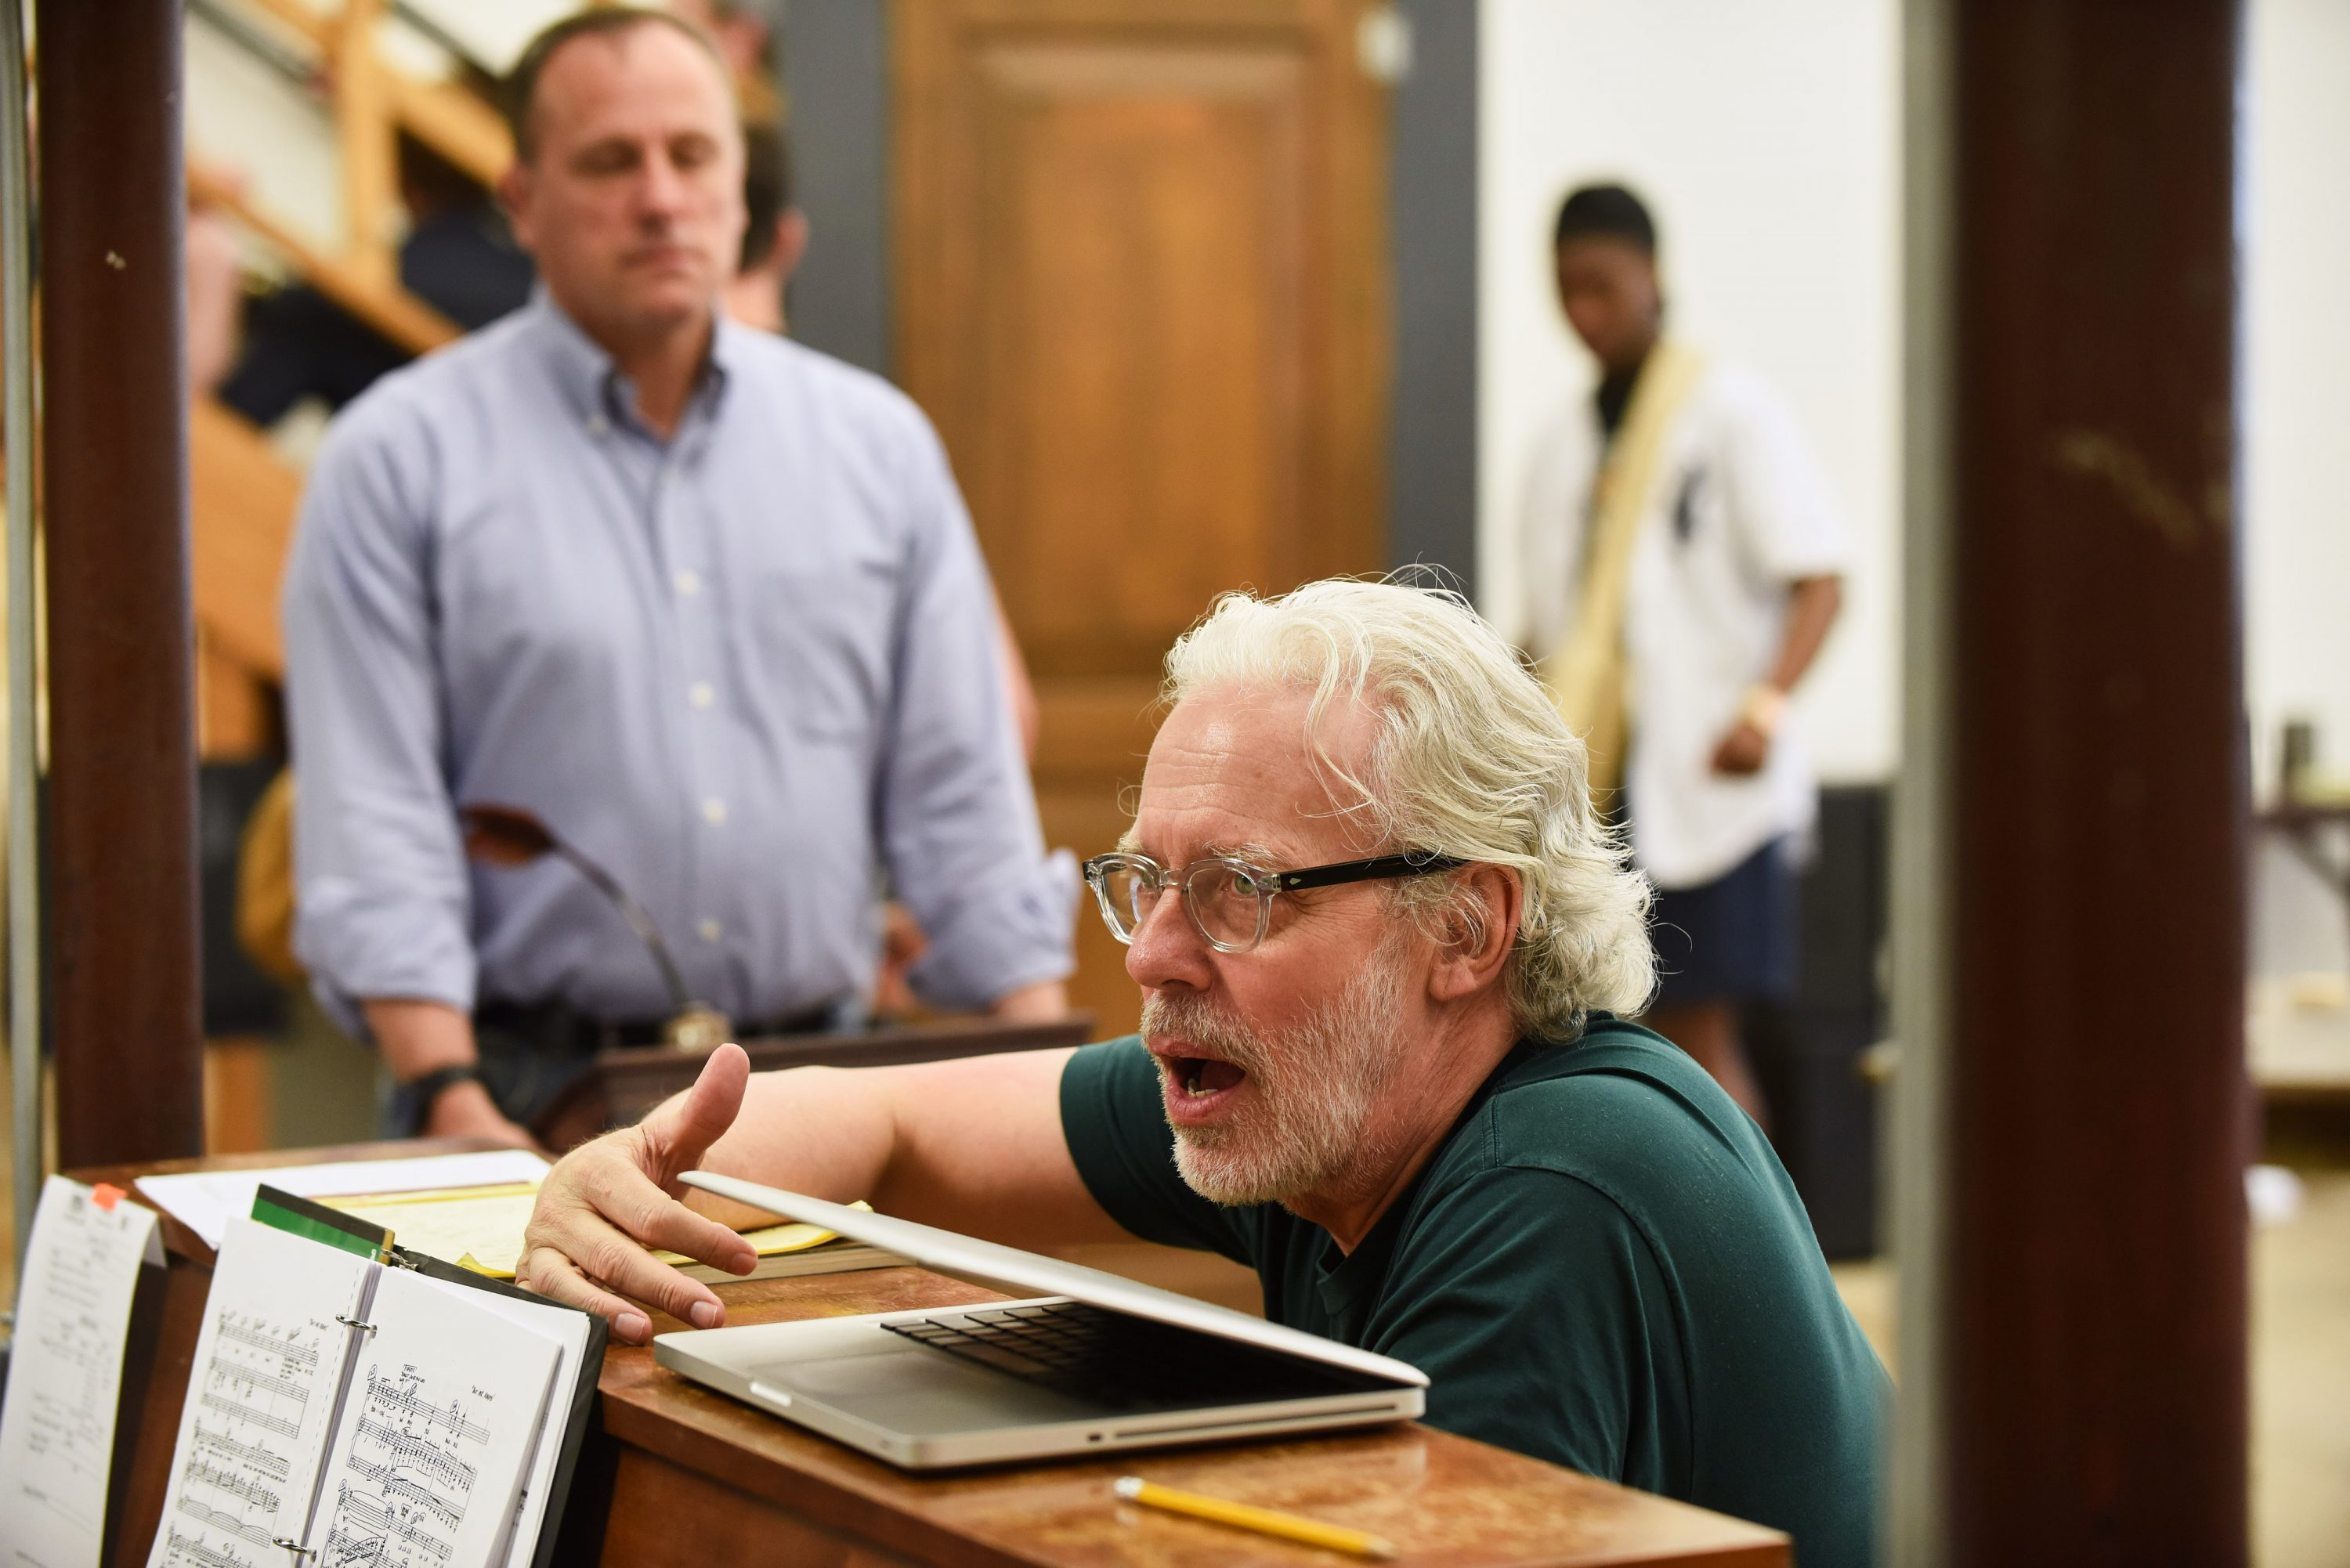 Terrence Mann, artistic director of the Connecticut Repertory Theatre's Nutmeg Summer Series, will oversee three musicals for CRT this year, directing one, Jesus Christ Superstar, and playing the lead in Sweeney Todd. (Peter Morenus/UConn File Photo)